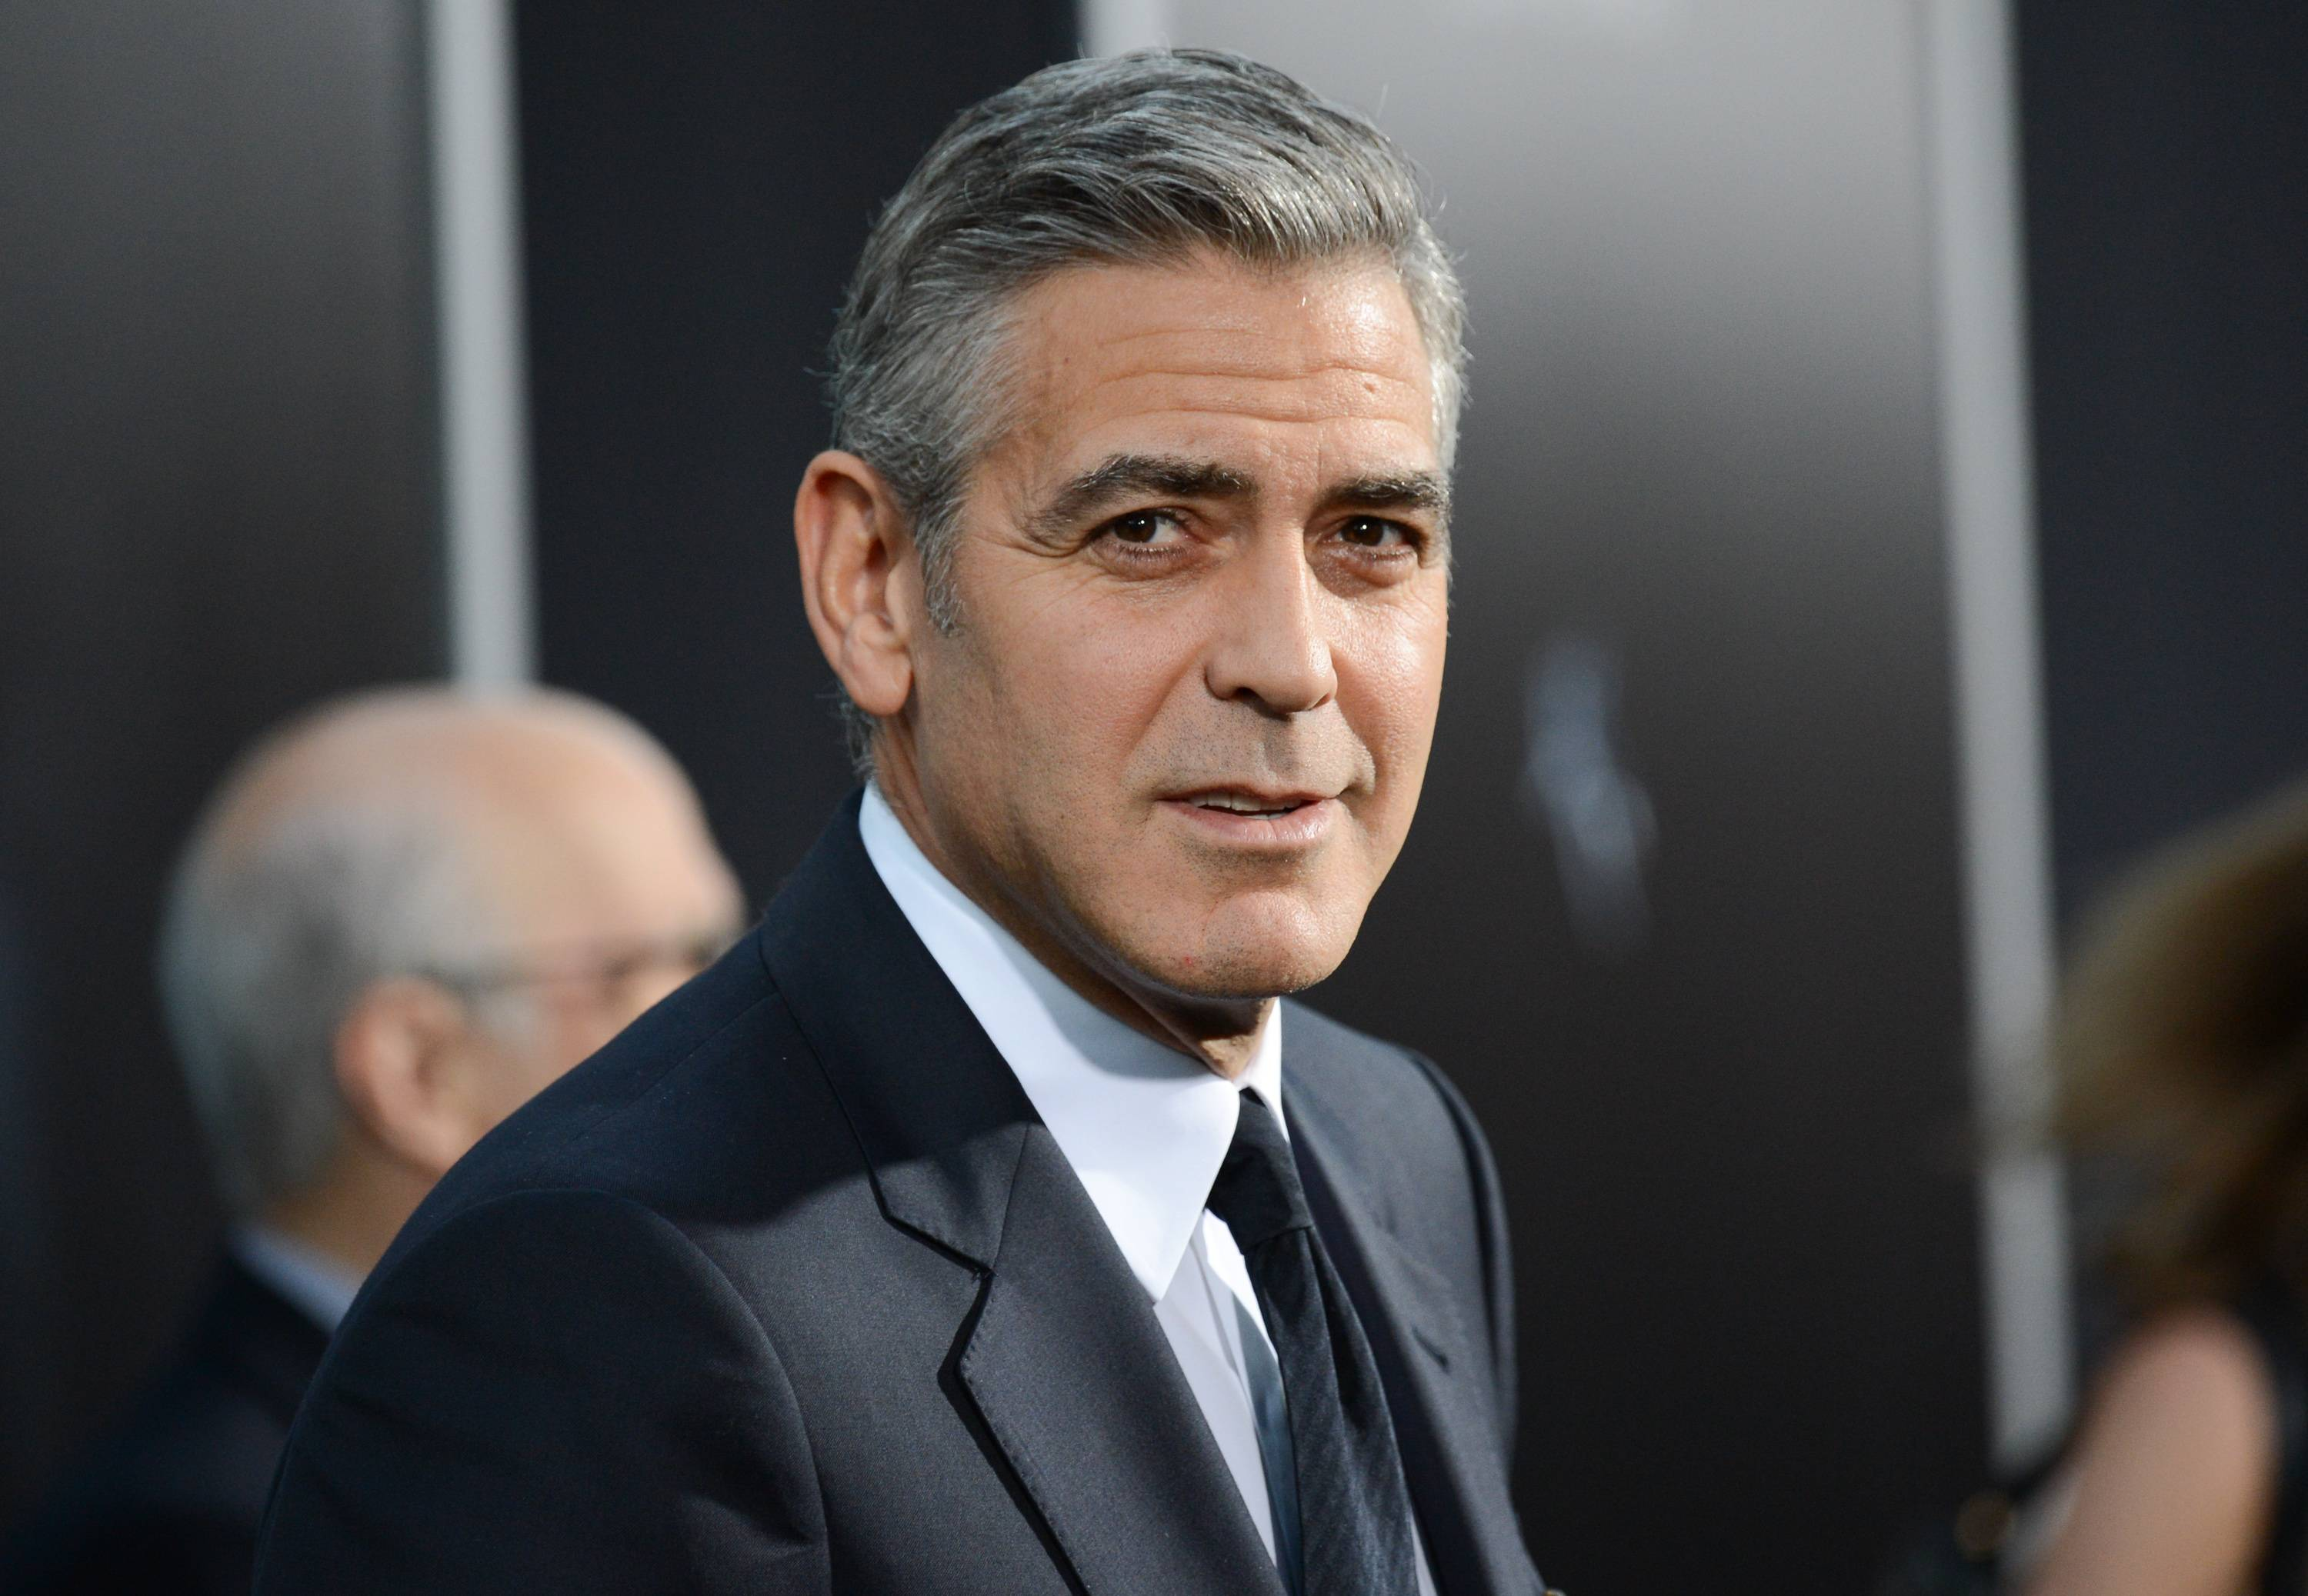 George Clooney and his fiancée have posted a legal notice declaring their intention to marry in Italy. Clooney and Beirut-born London lawyer Amal Alamuddin announced their engagement in April, though the pair have not yet announced a date for their nuptials.